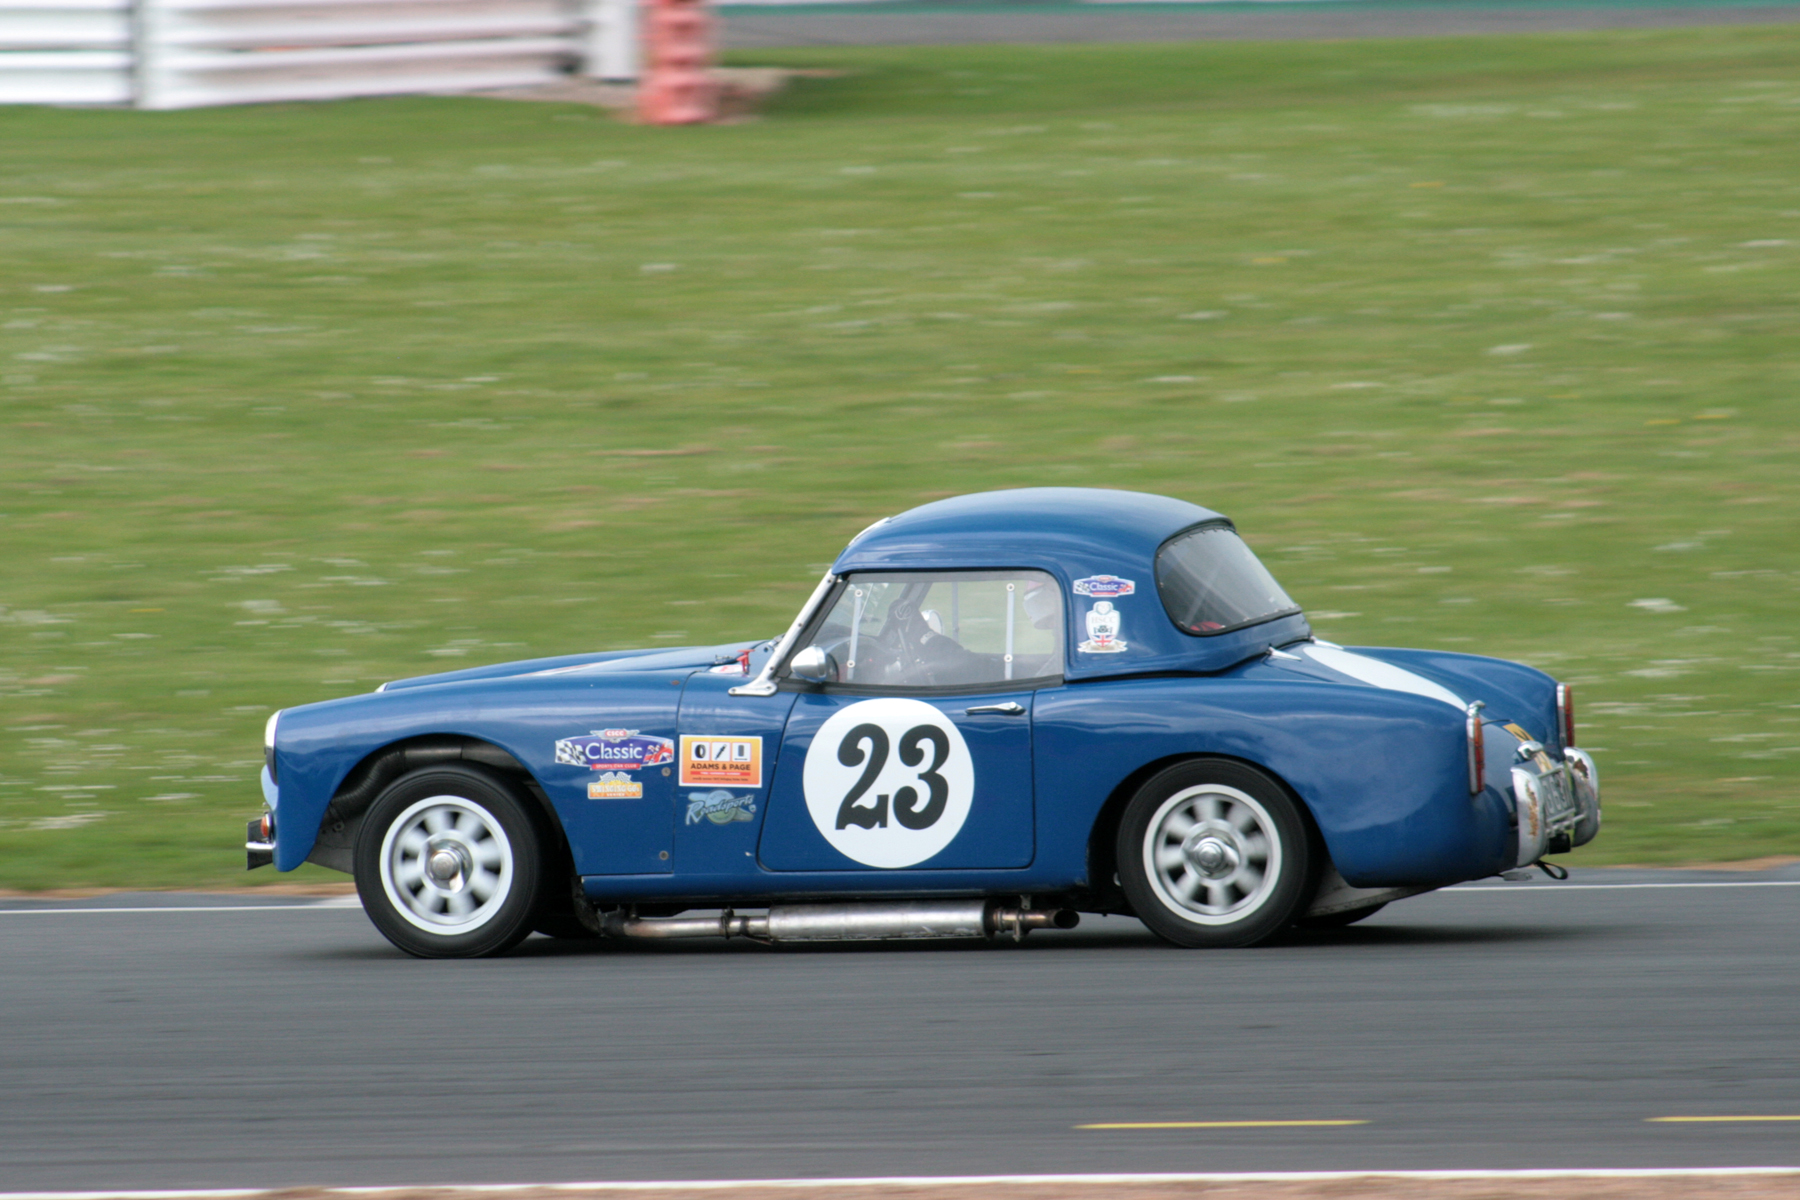 Shaun Hadrell in his Turner Mk1 Climax (FWE) finished 12th. Photo John Turner